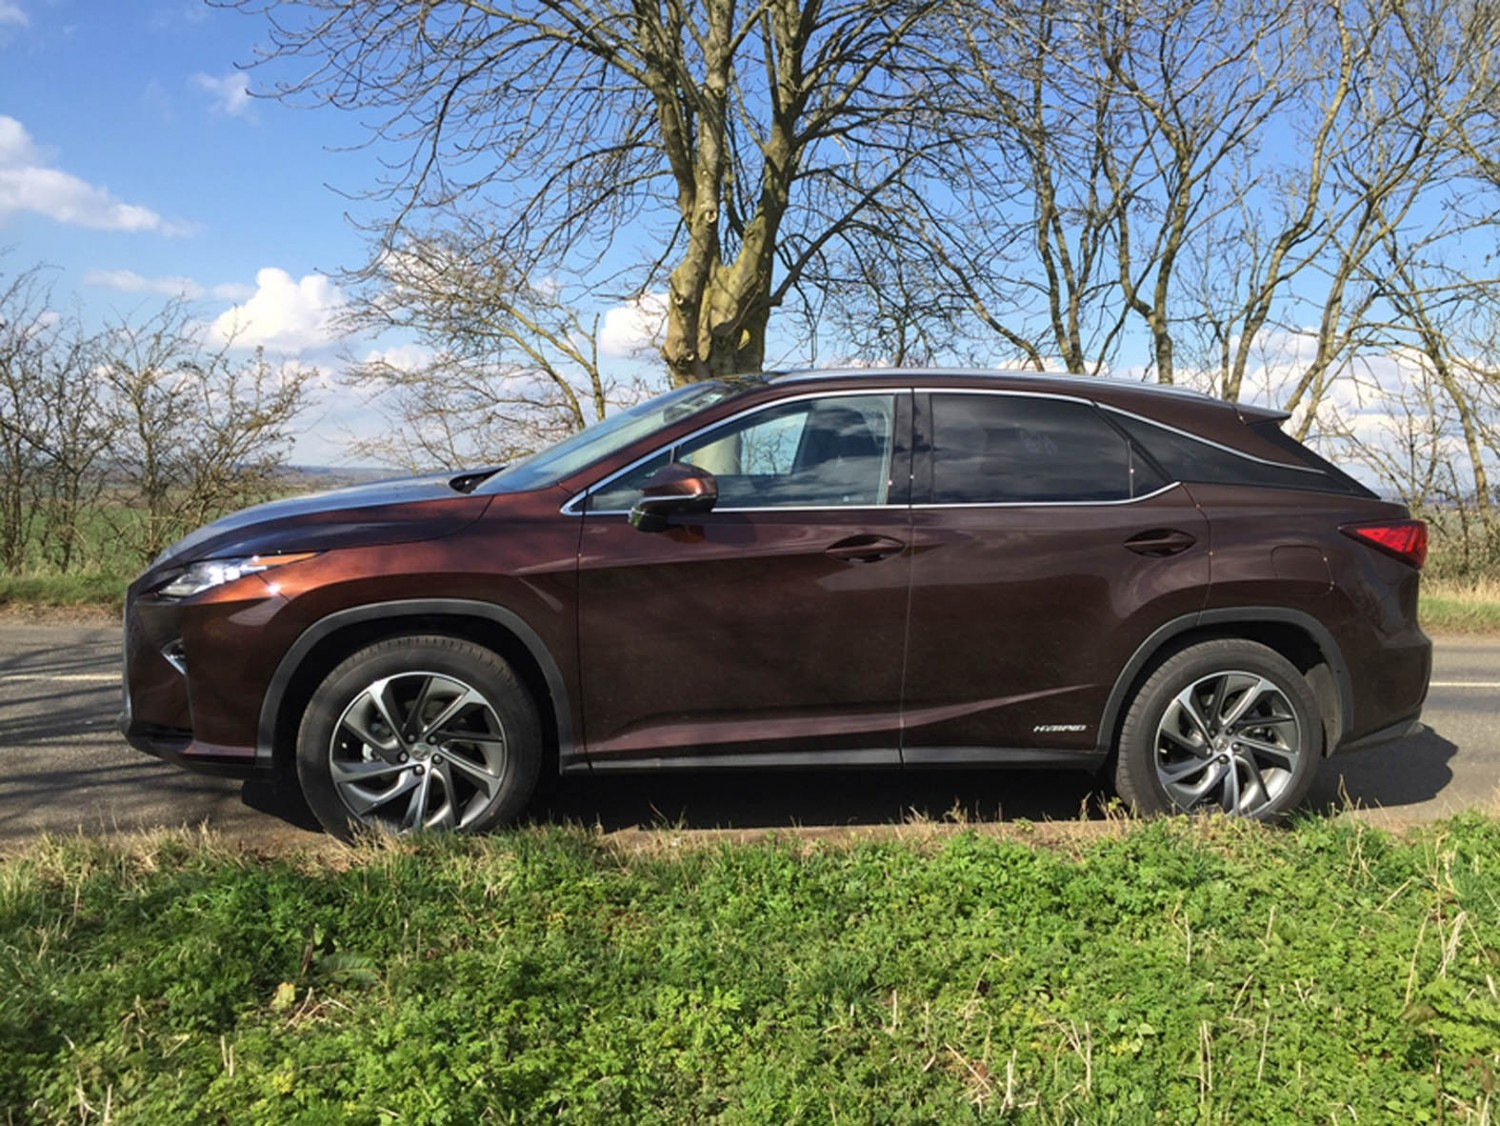 lexus rx essay Humans need not apply is a 2014 short internet video, directed, produced,  written and edited  lexus rx 450h with attachment on top and google logo on  side a lexus rx 450h retrofitted as a self-driving car by google the video  focuses.